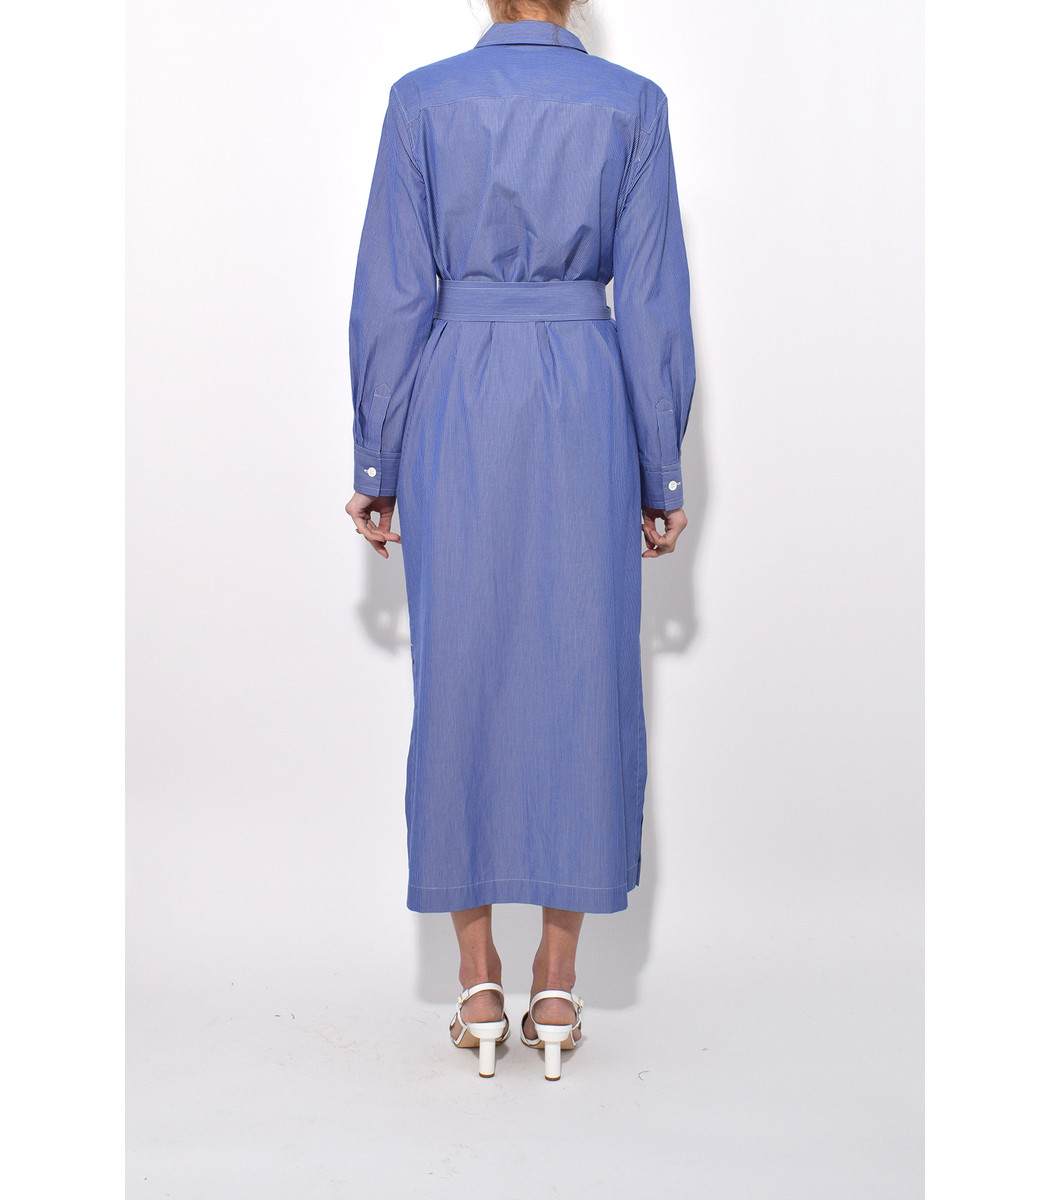 Millie dress - Blue A.P.C. Free Shipping Official Site Geniue Stockist Cheap Enjoy Discount Official 7Jo82TV4